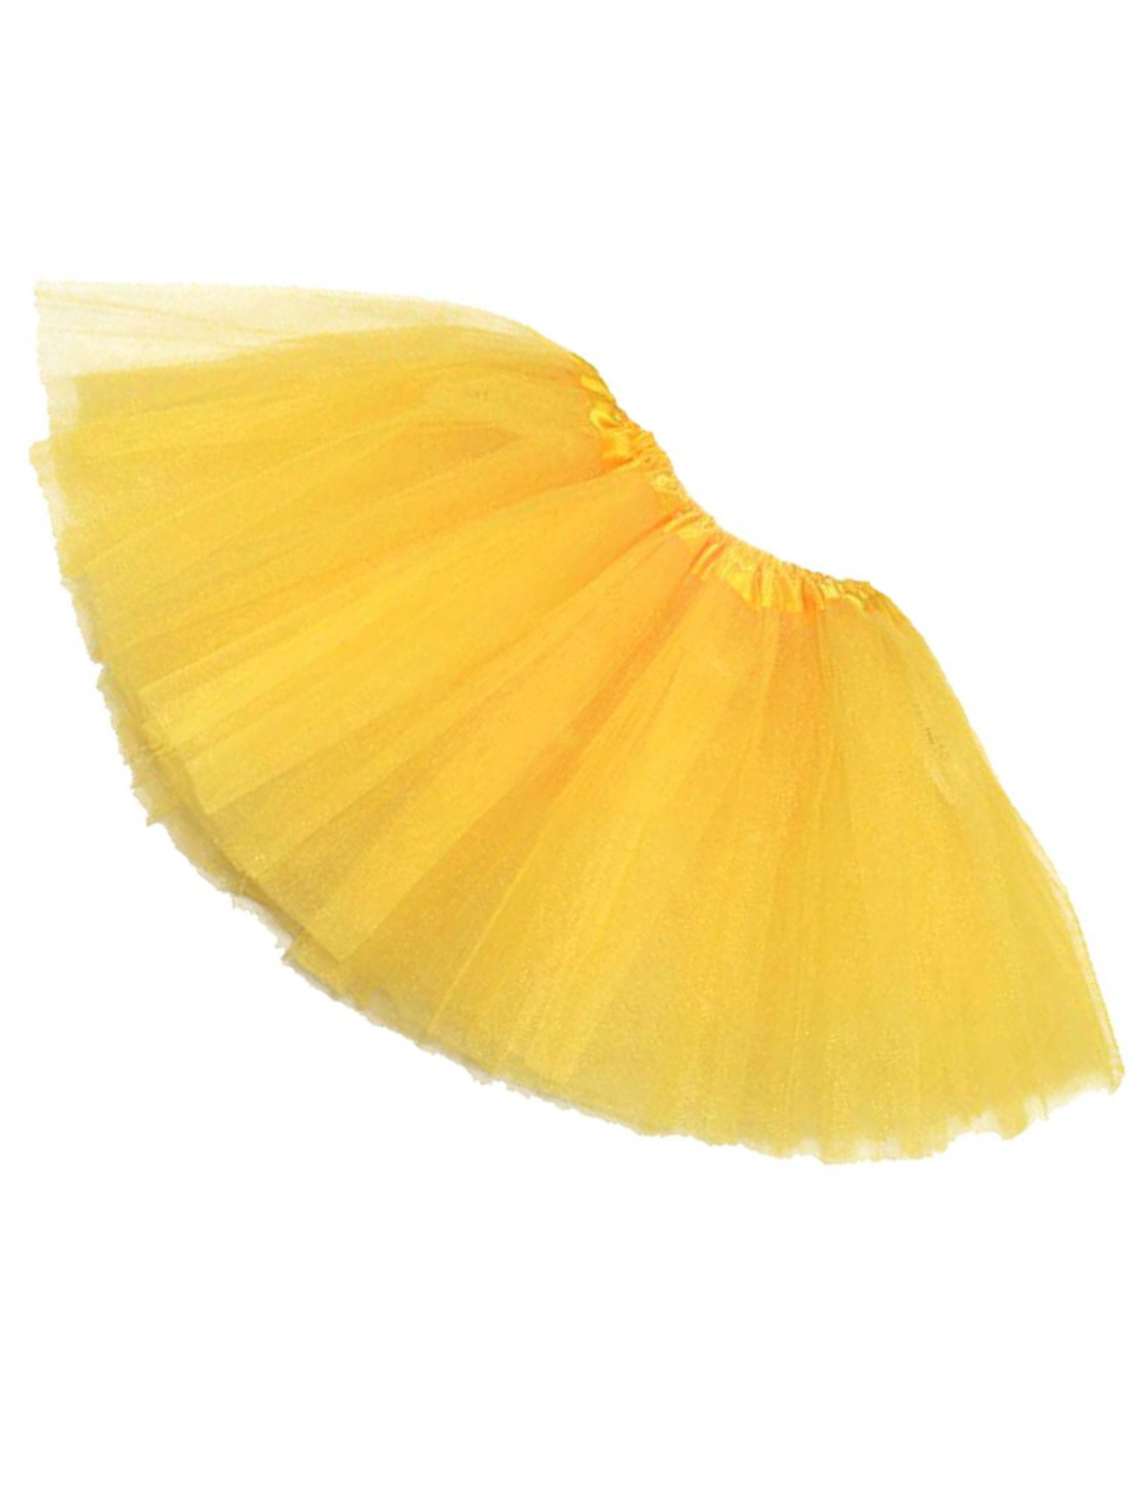 Newest Women/Adult Organza Dance Wear Tutu Ballet Pettiskirt Princess Party Skirt Yellow